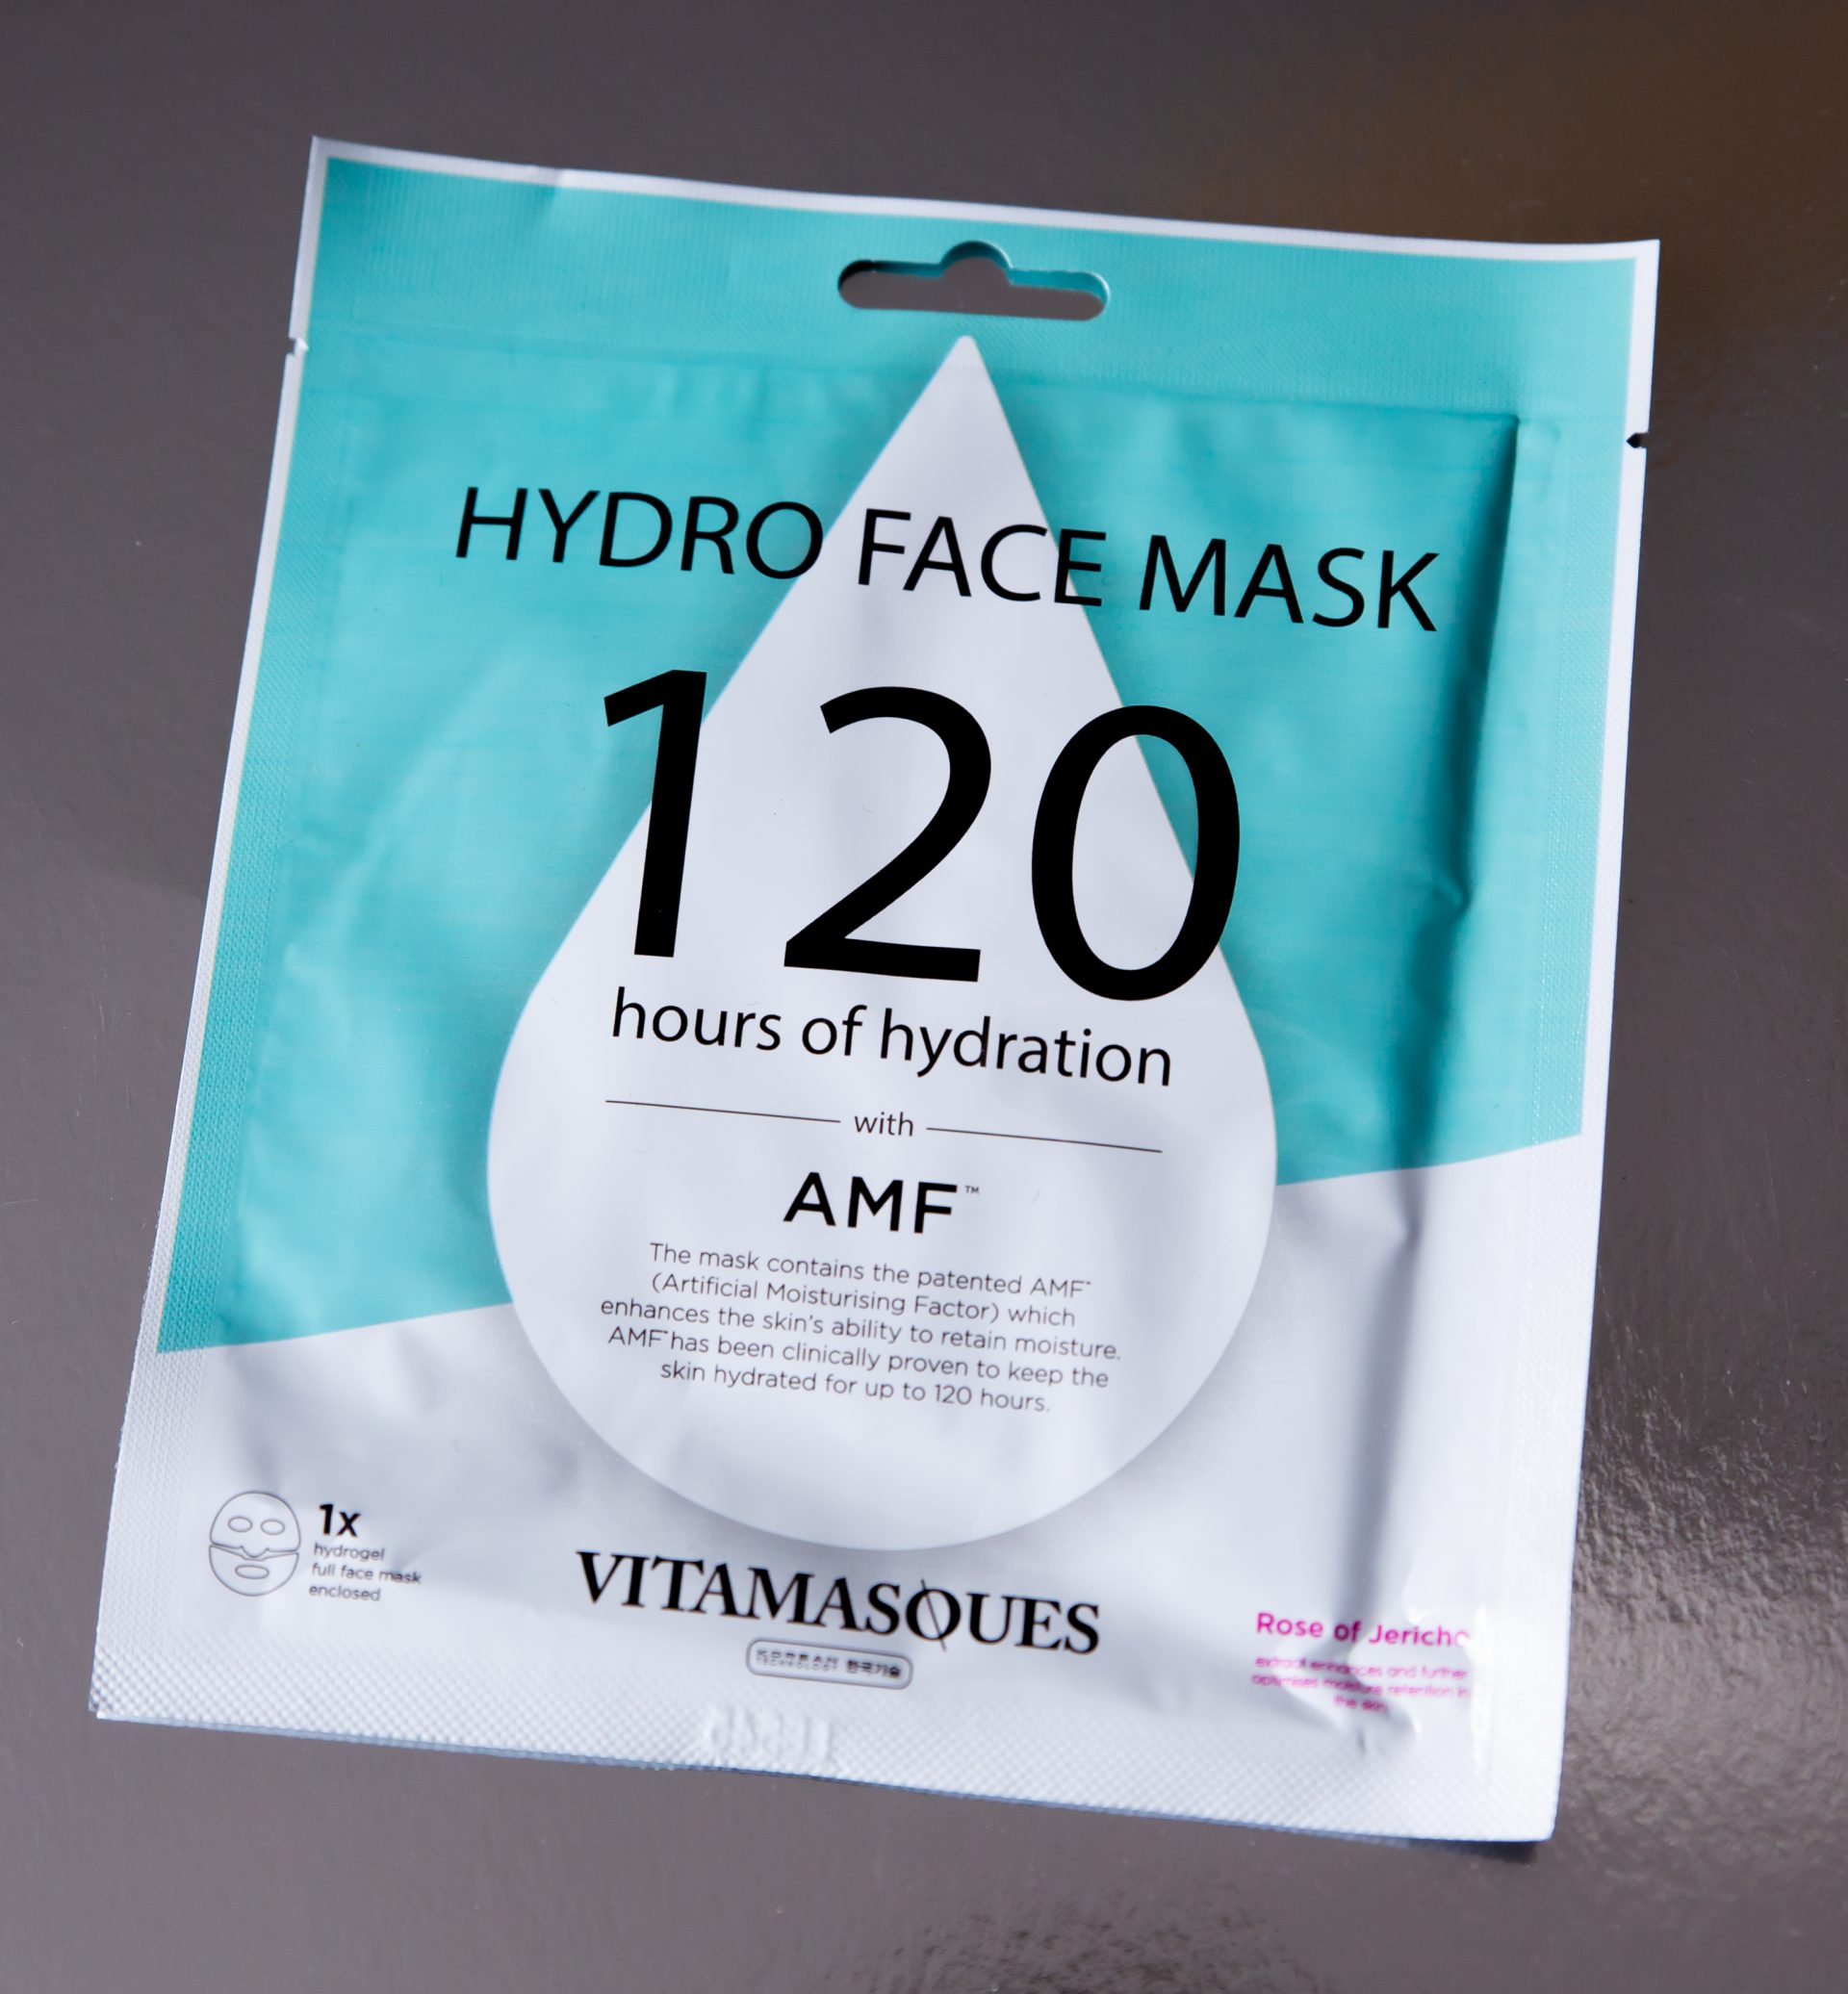 StyleTone november - Vitamasques hydro face mask